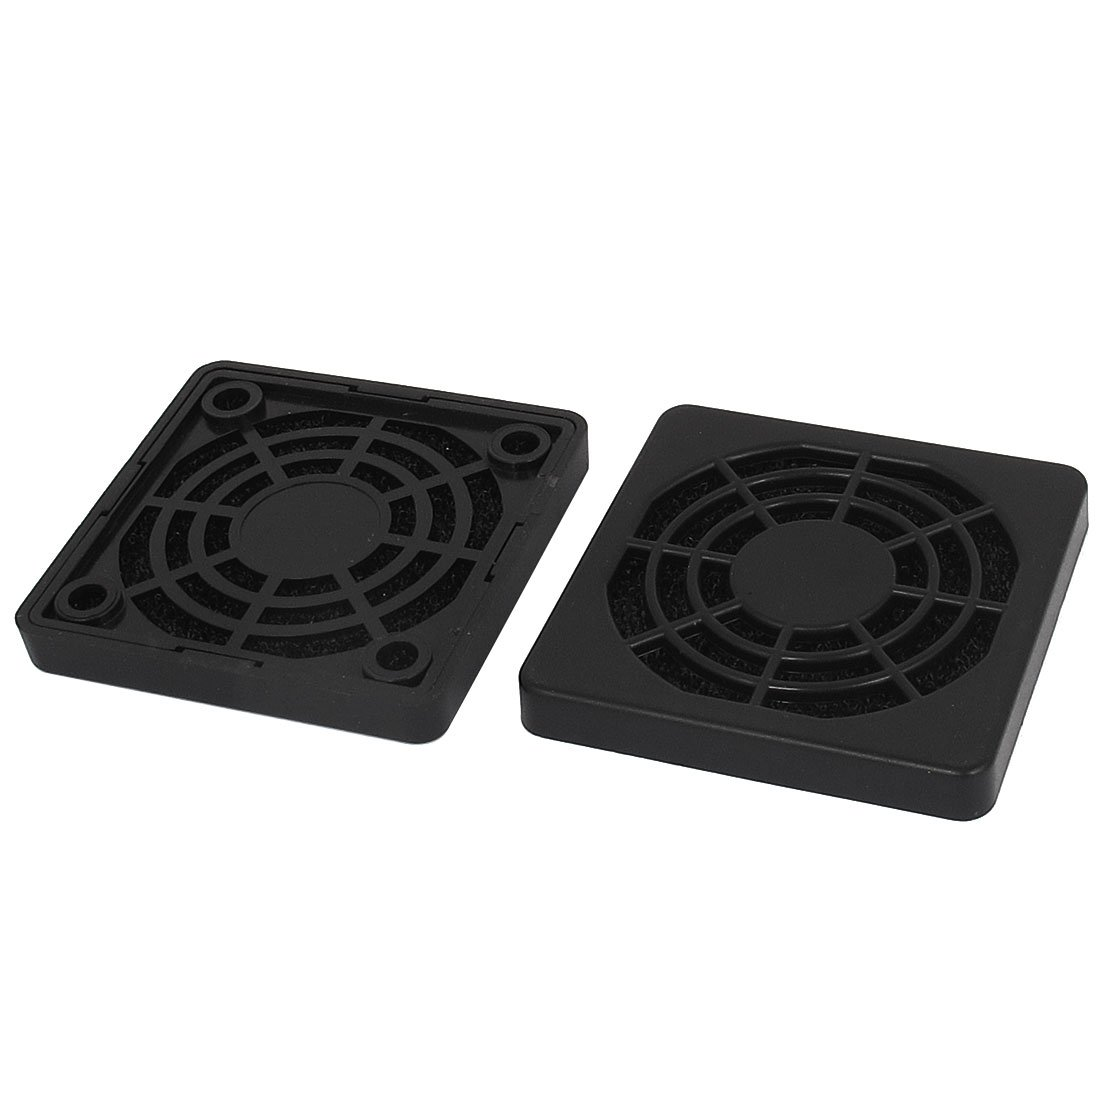 2x Dustproof 40mm Mesh Case Cooler Fan Dust Filter Cover Grill for PC BE